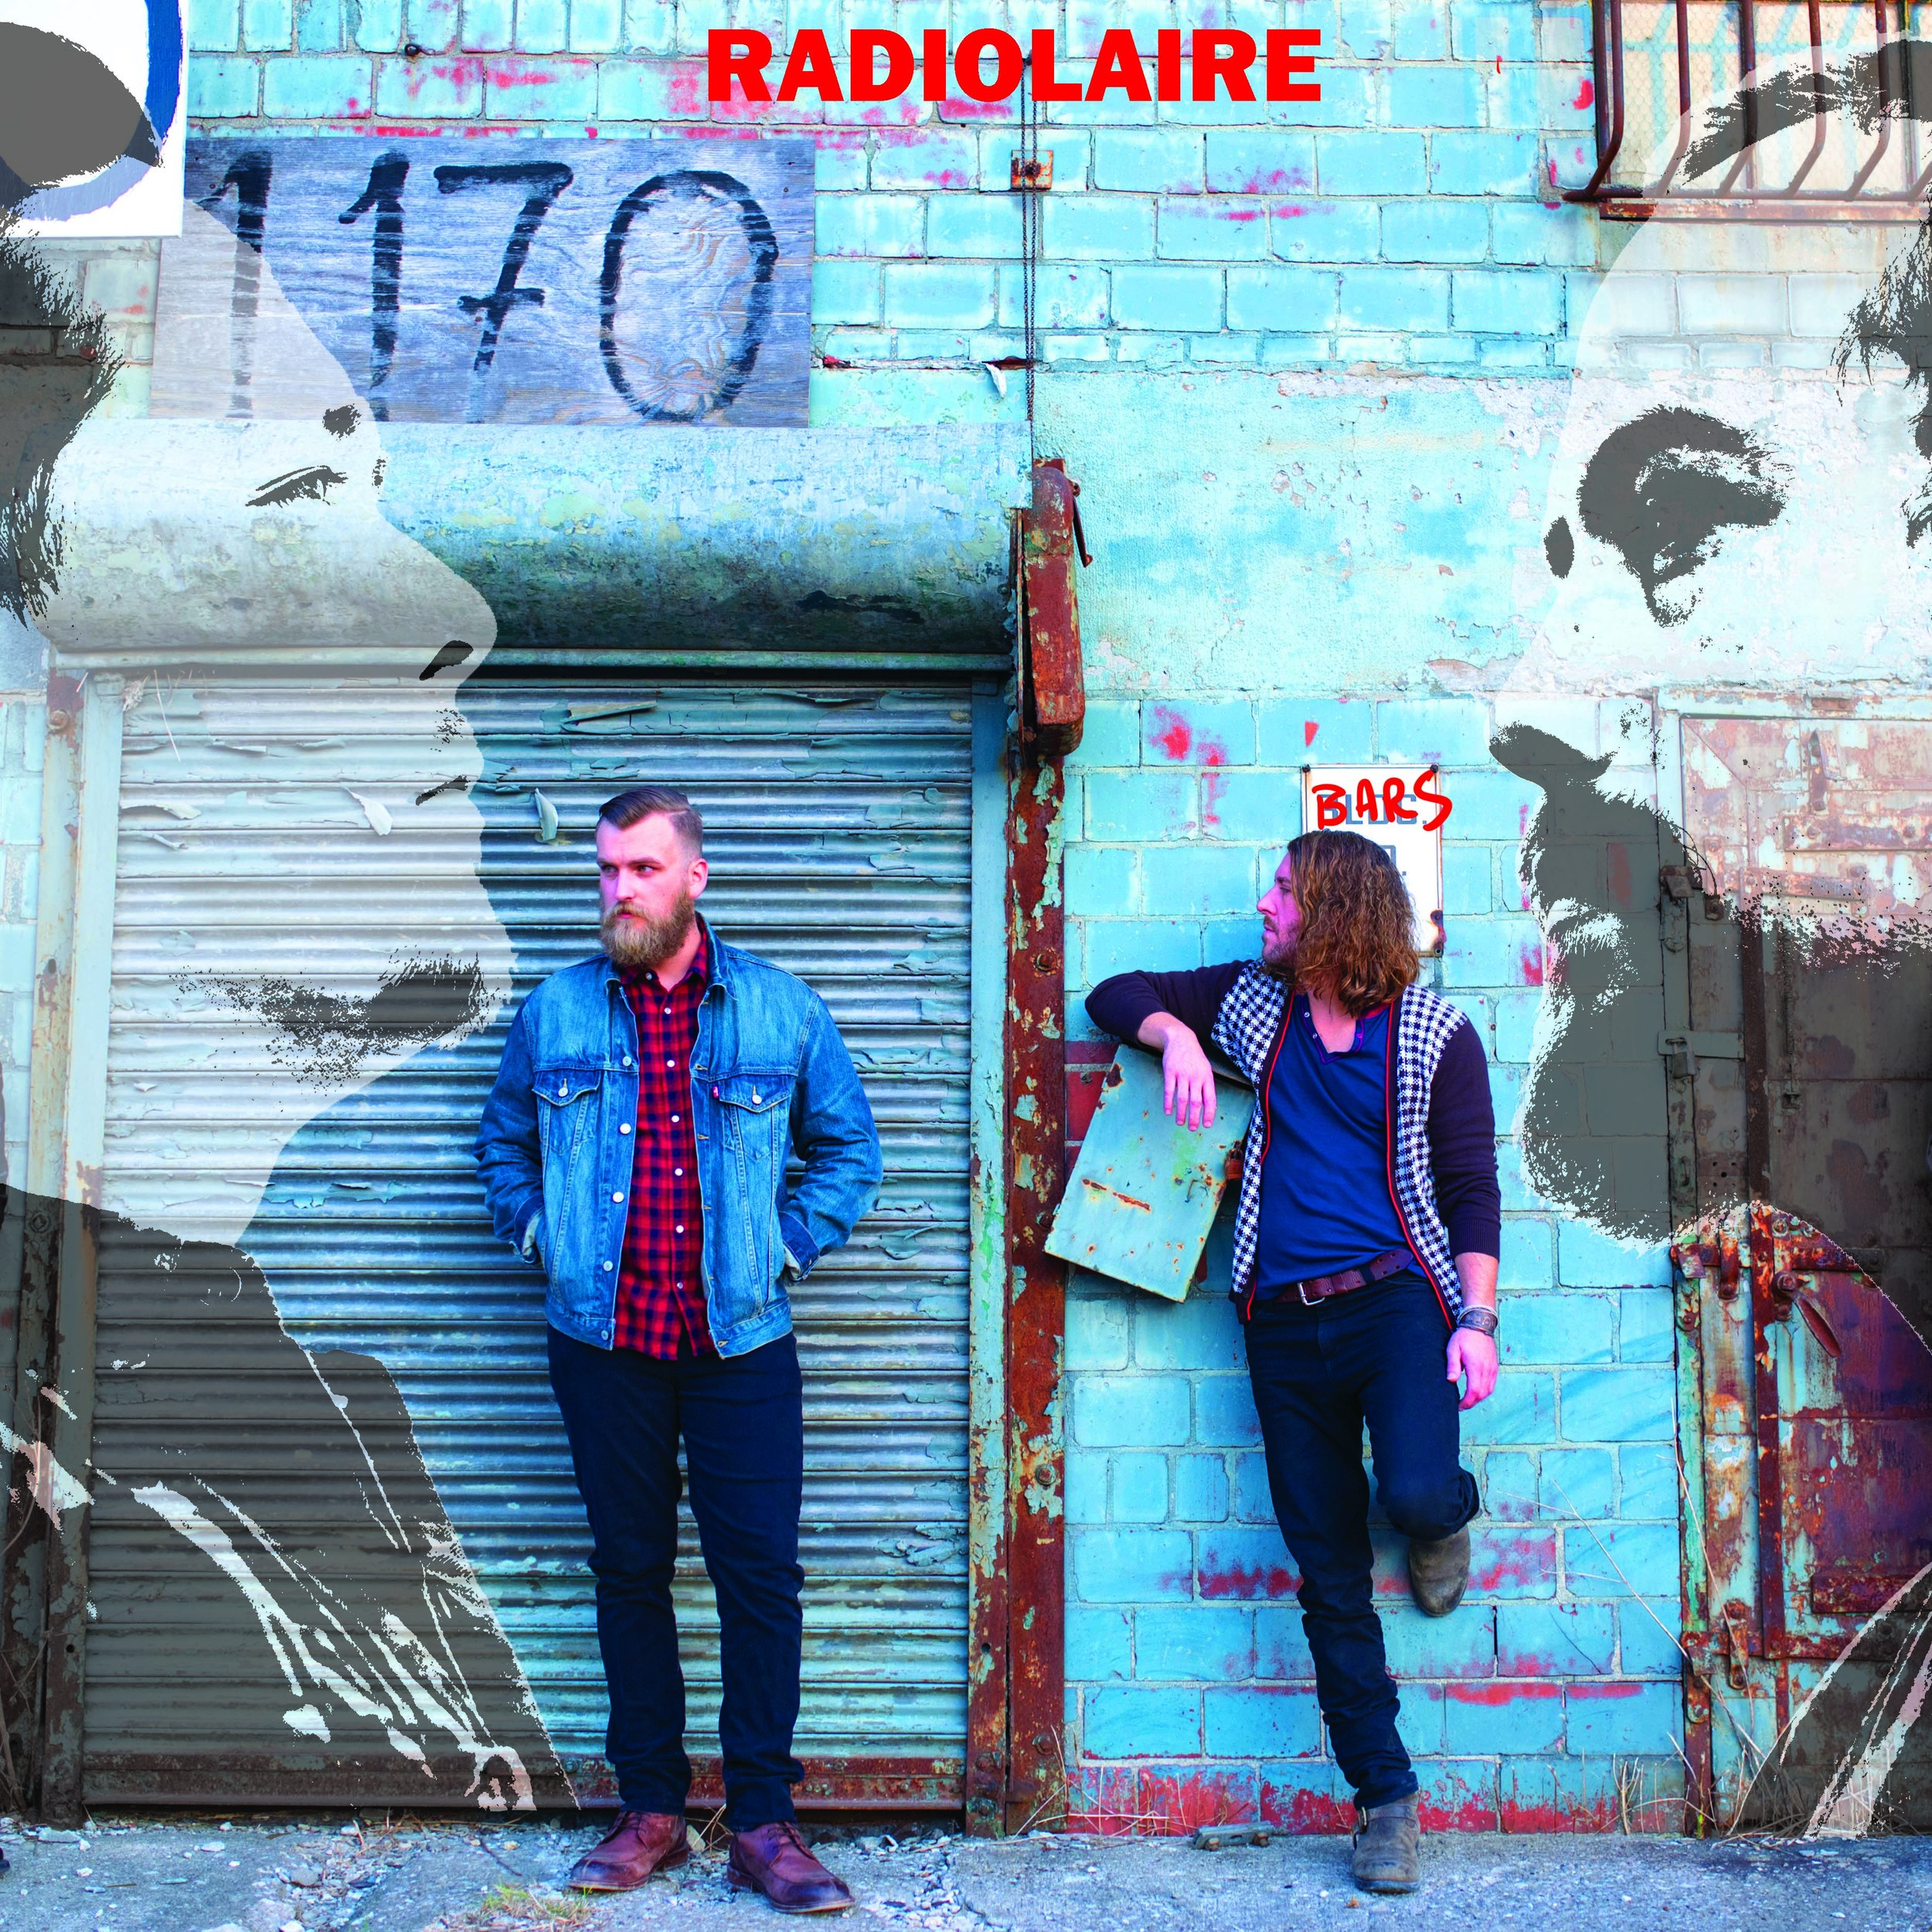 Radiolaire Album Cover Wallpaper Wall simple with text.jpg